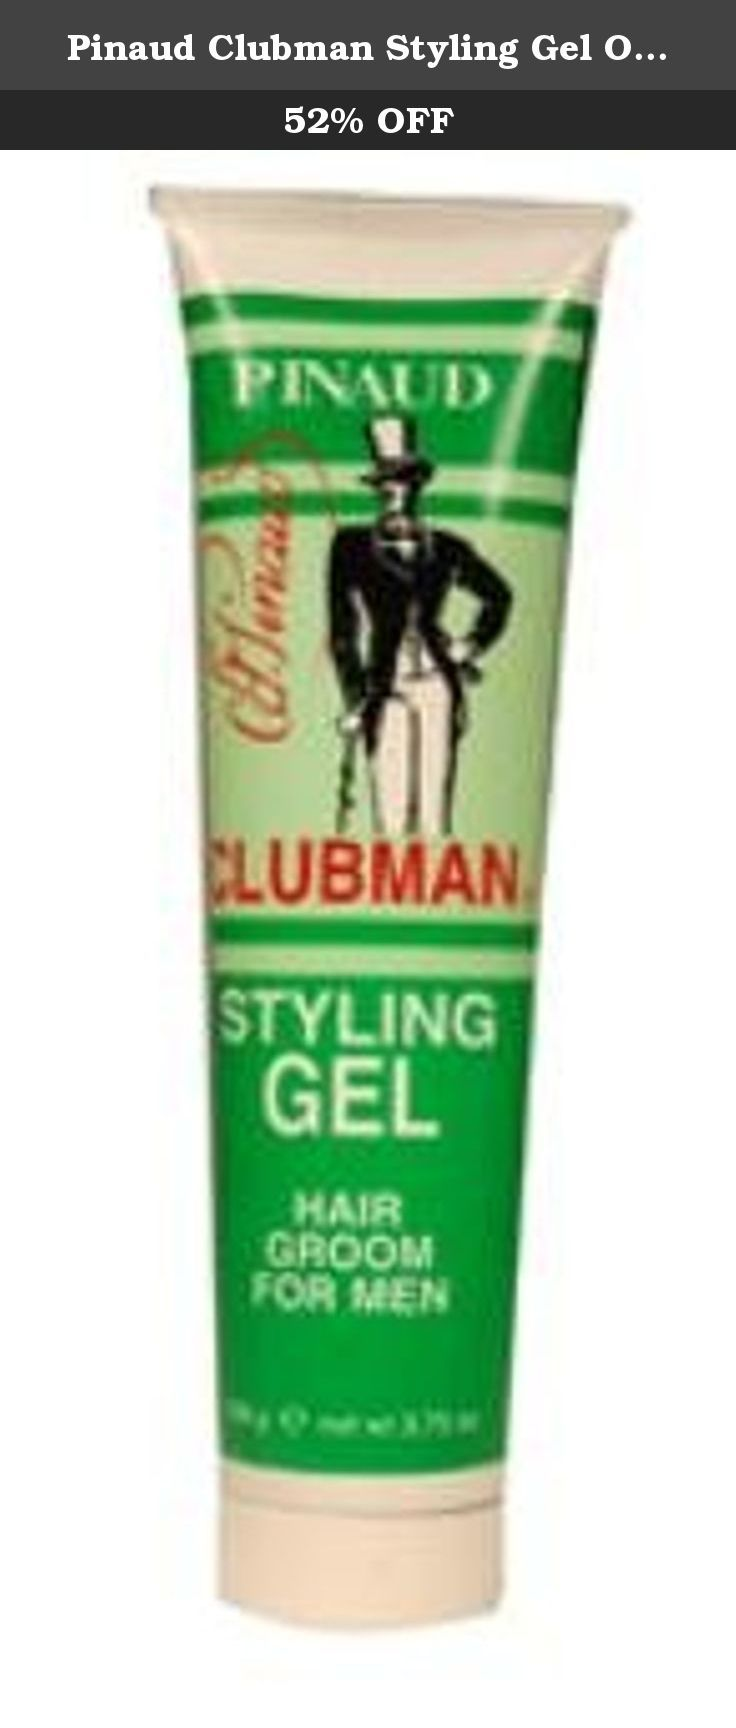 Pinaud Clubman Styling Gel Original 3 75 Oz Keeps Hair Neat Well Groomed Never Greasy Conditions As It Grooms Styling Gel Gel Beauty And Personal Care